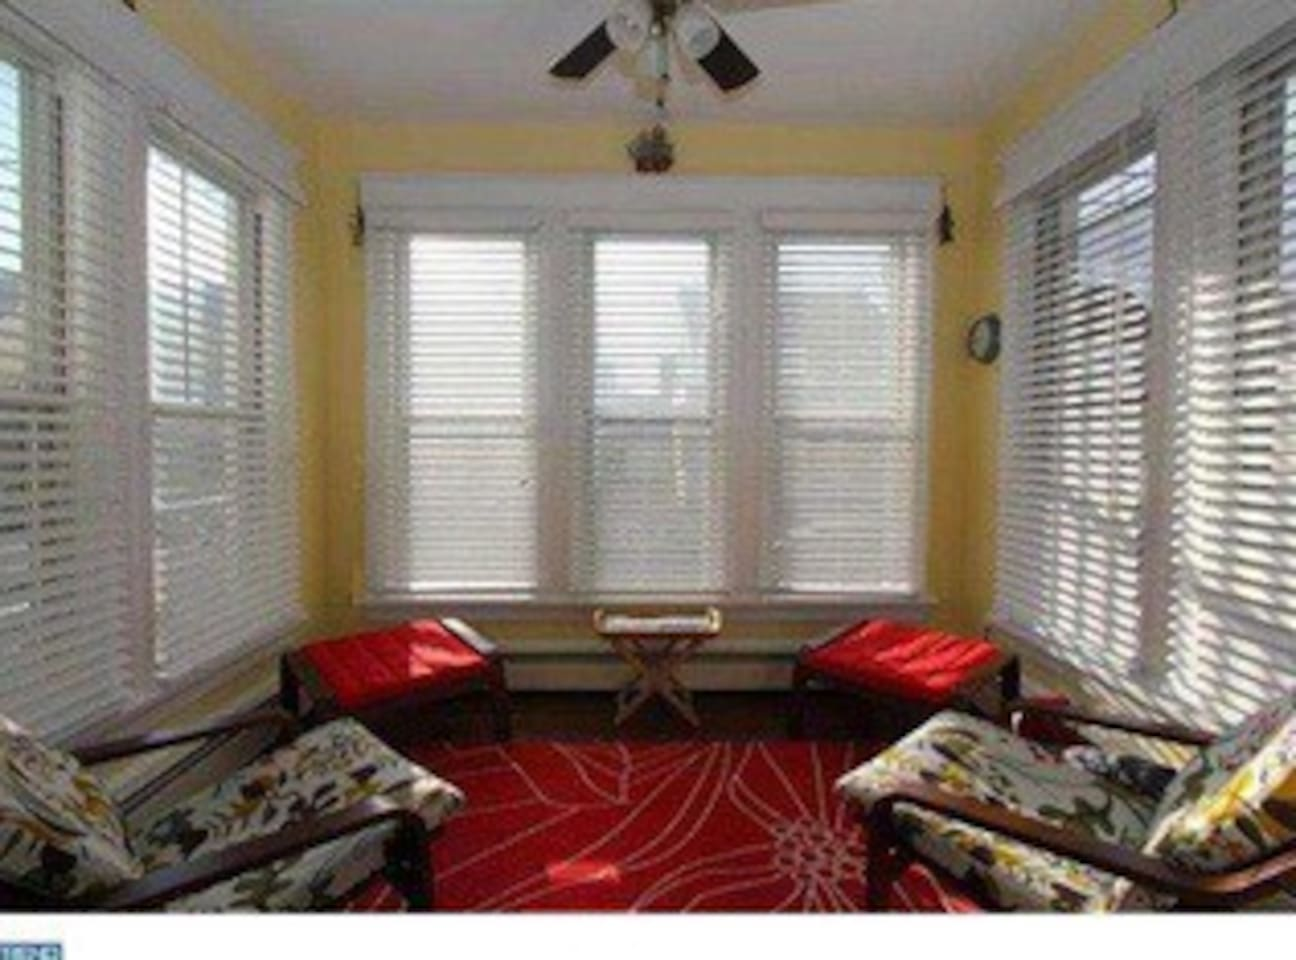 Sunroom great for morning coffee